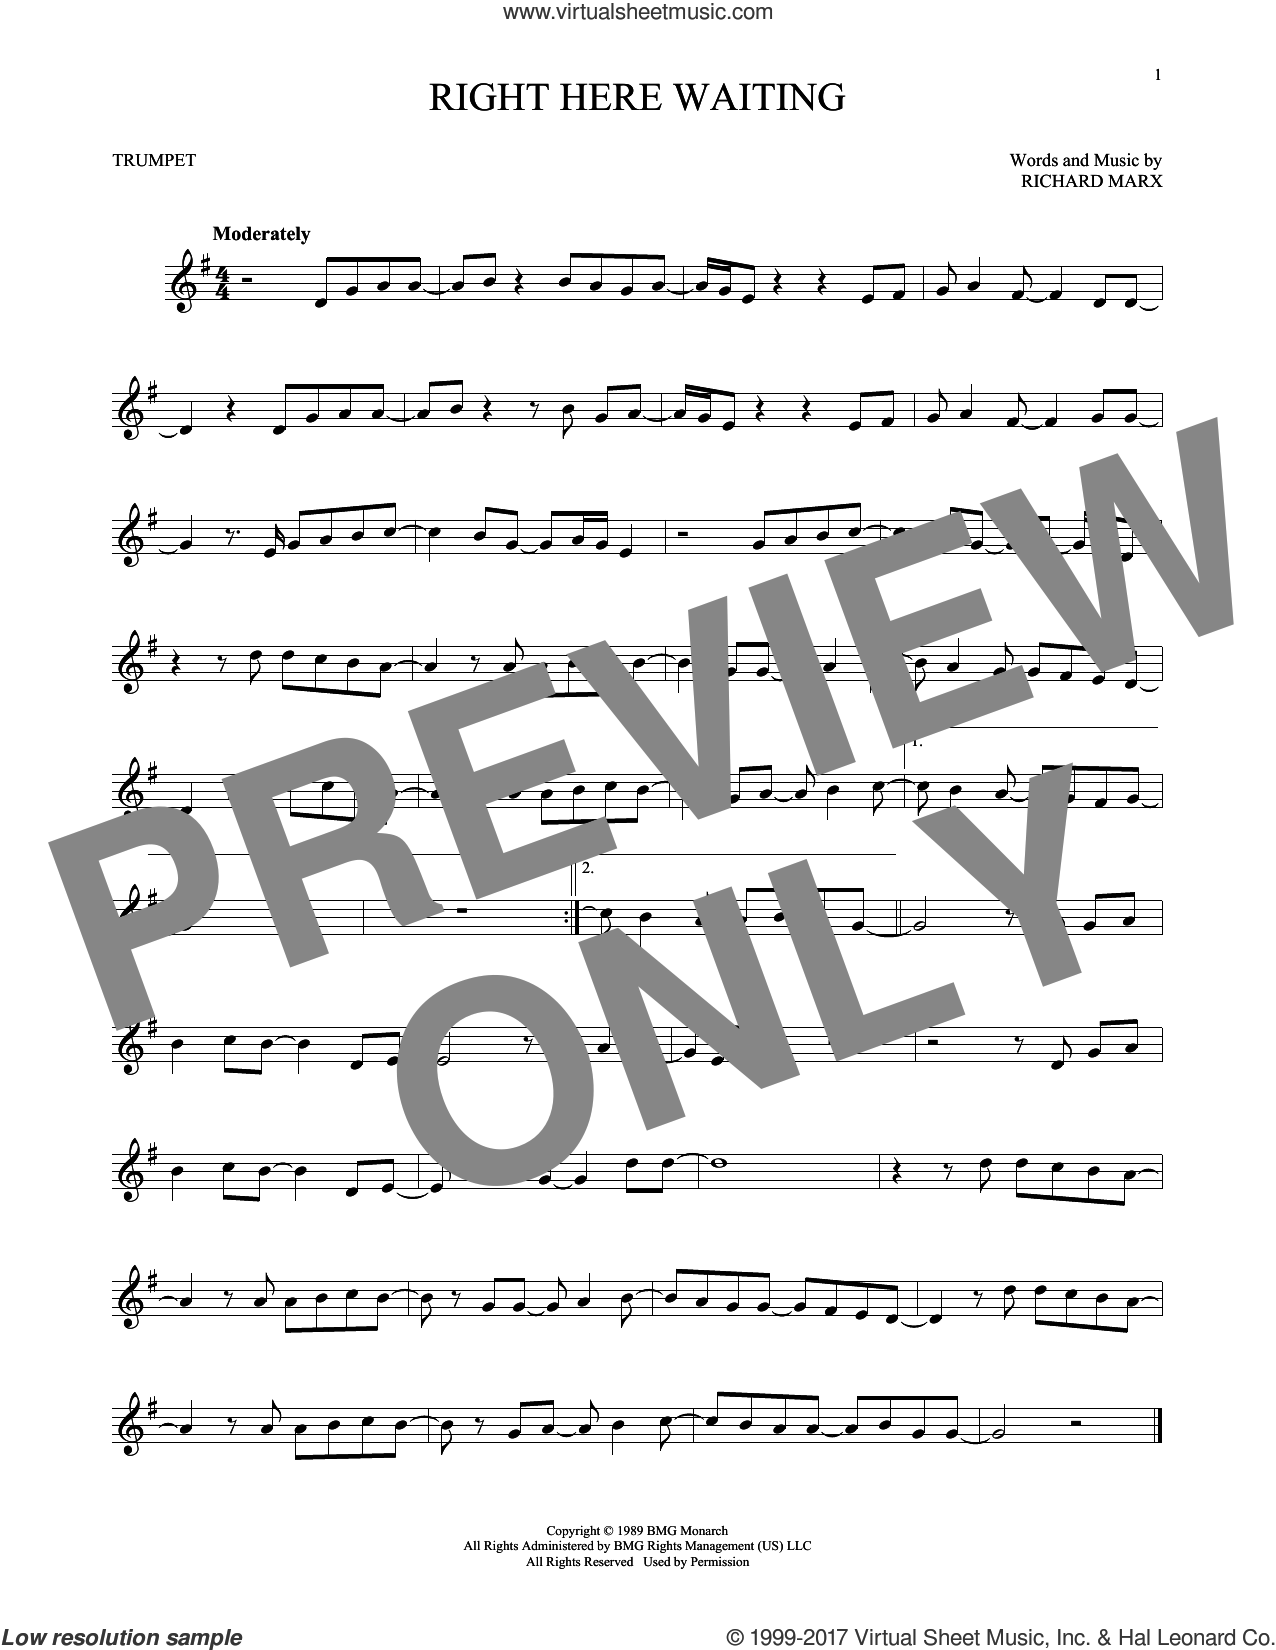 Right Here Waiting sheet music for trumpet solo by Richard Marx, intermediate skill level